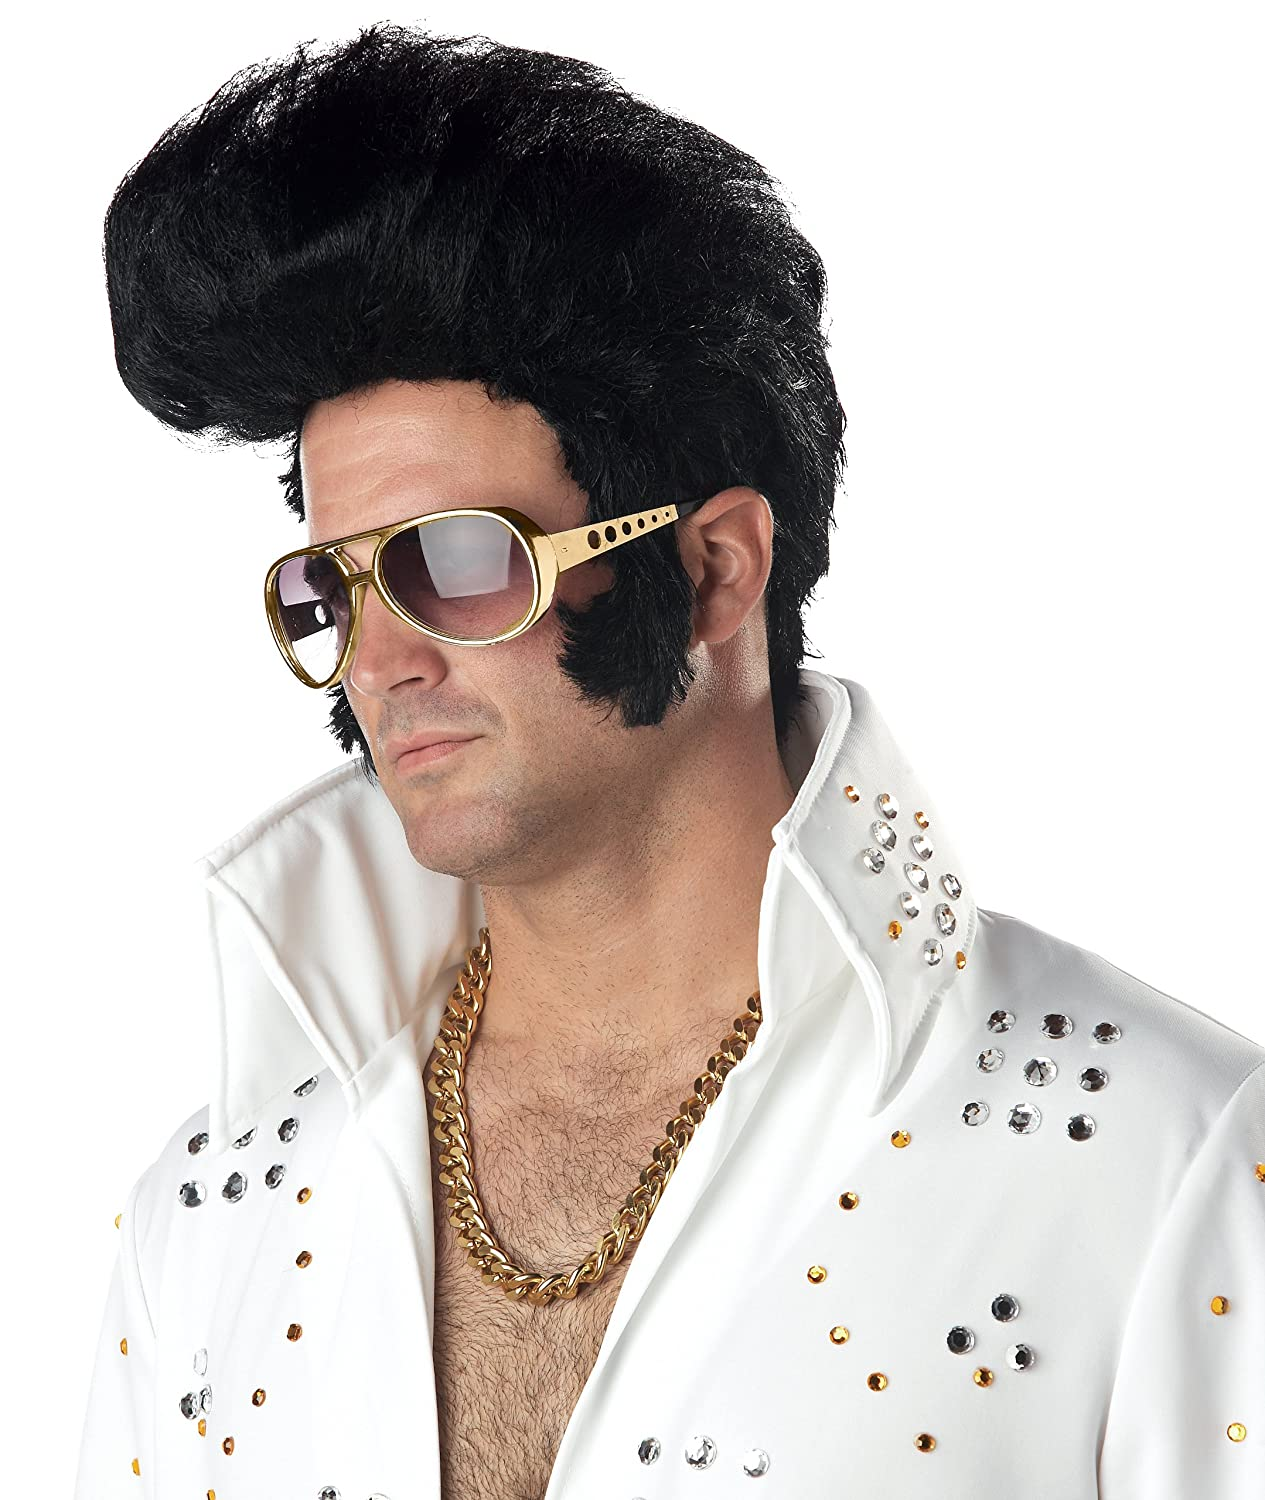 Deluxe Rock N Roll Elvis Wig Mens Fancy Dress 1950s Celebrity Costume Accessory (disfraz): Amazon.es: Juguetes y juegos